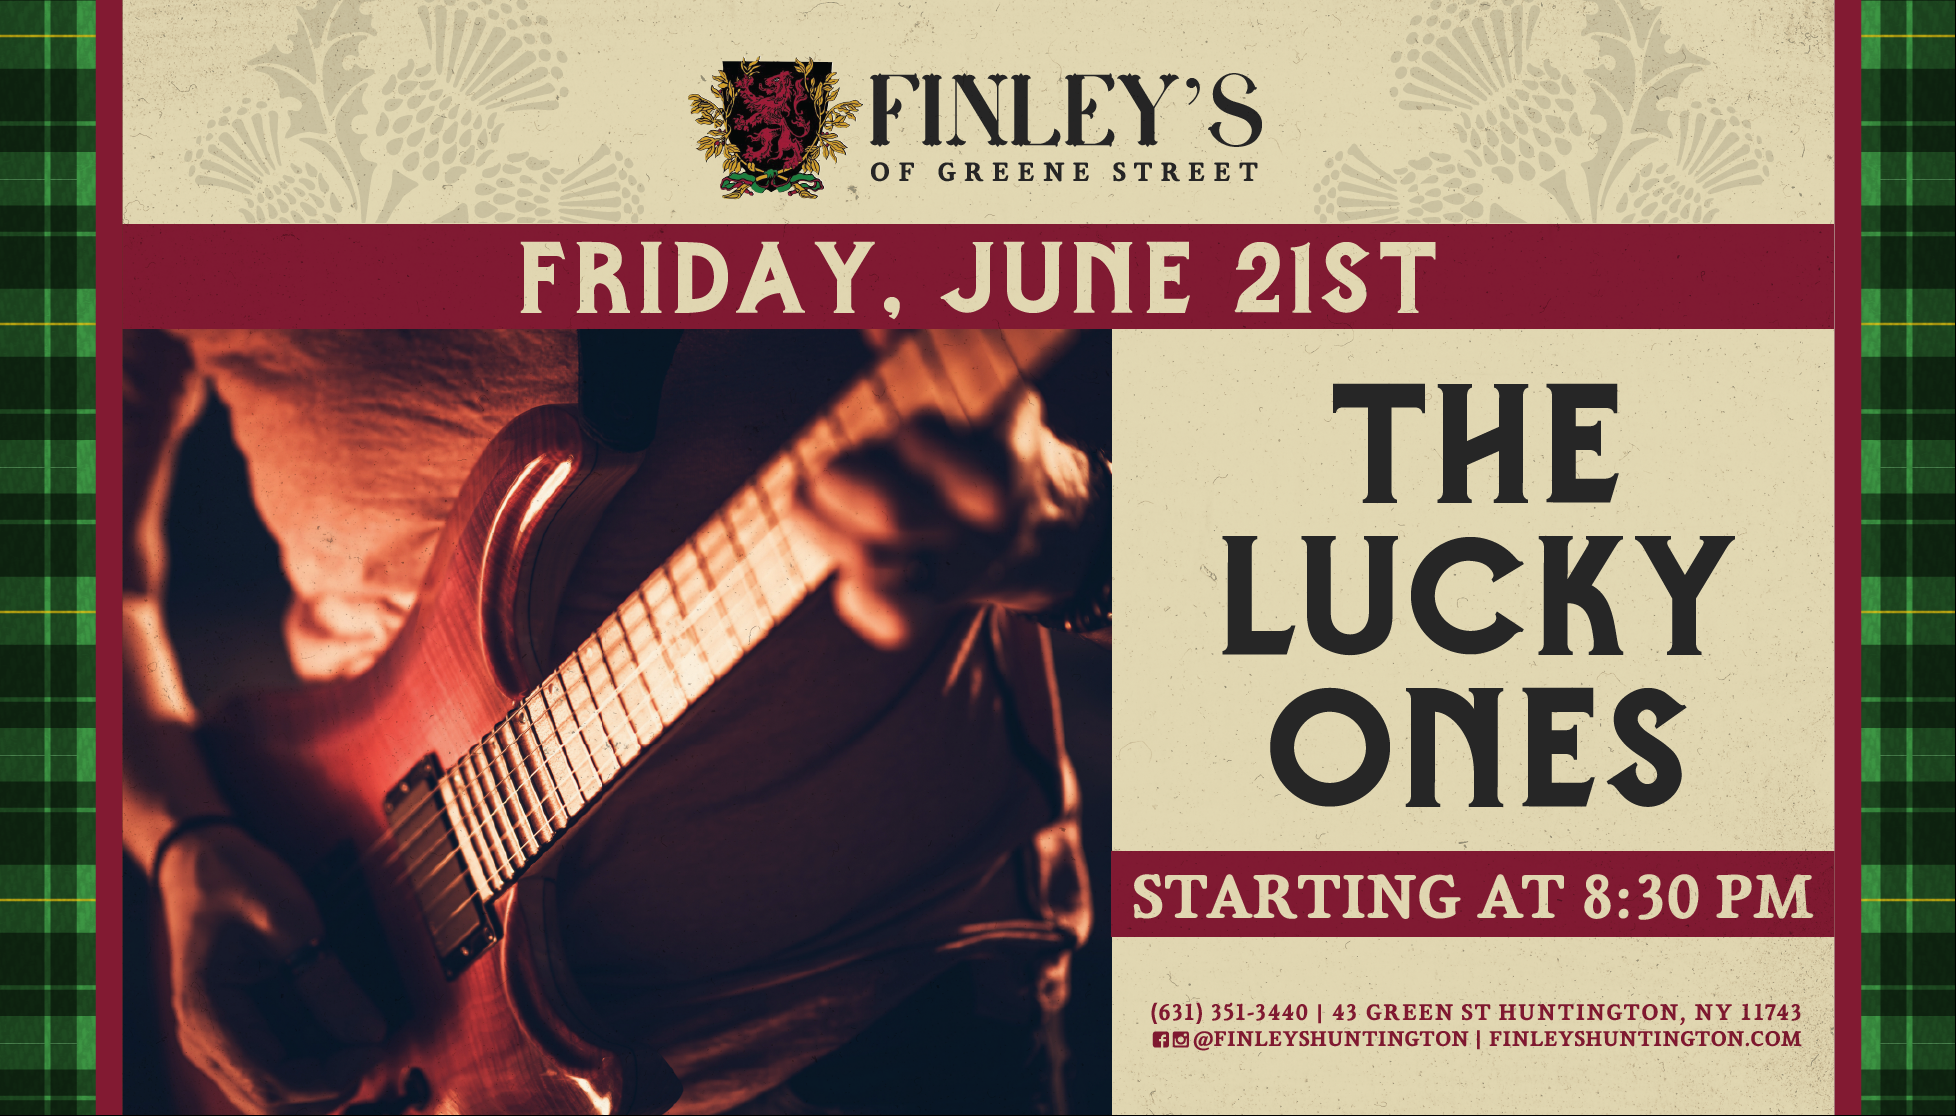 Flyer for The Lucky Ones starting at 8:30pm.